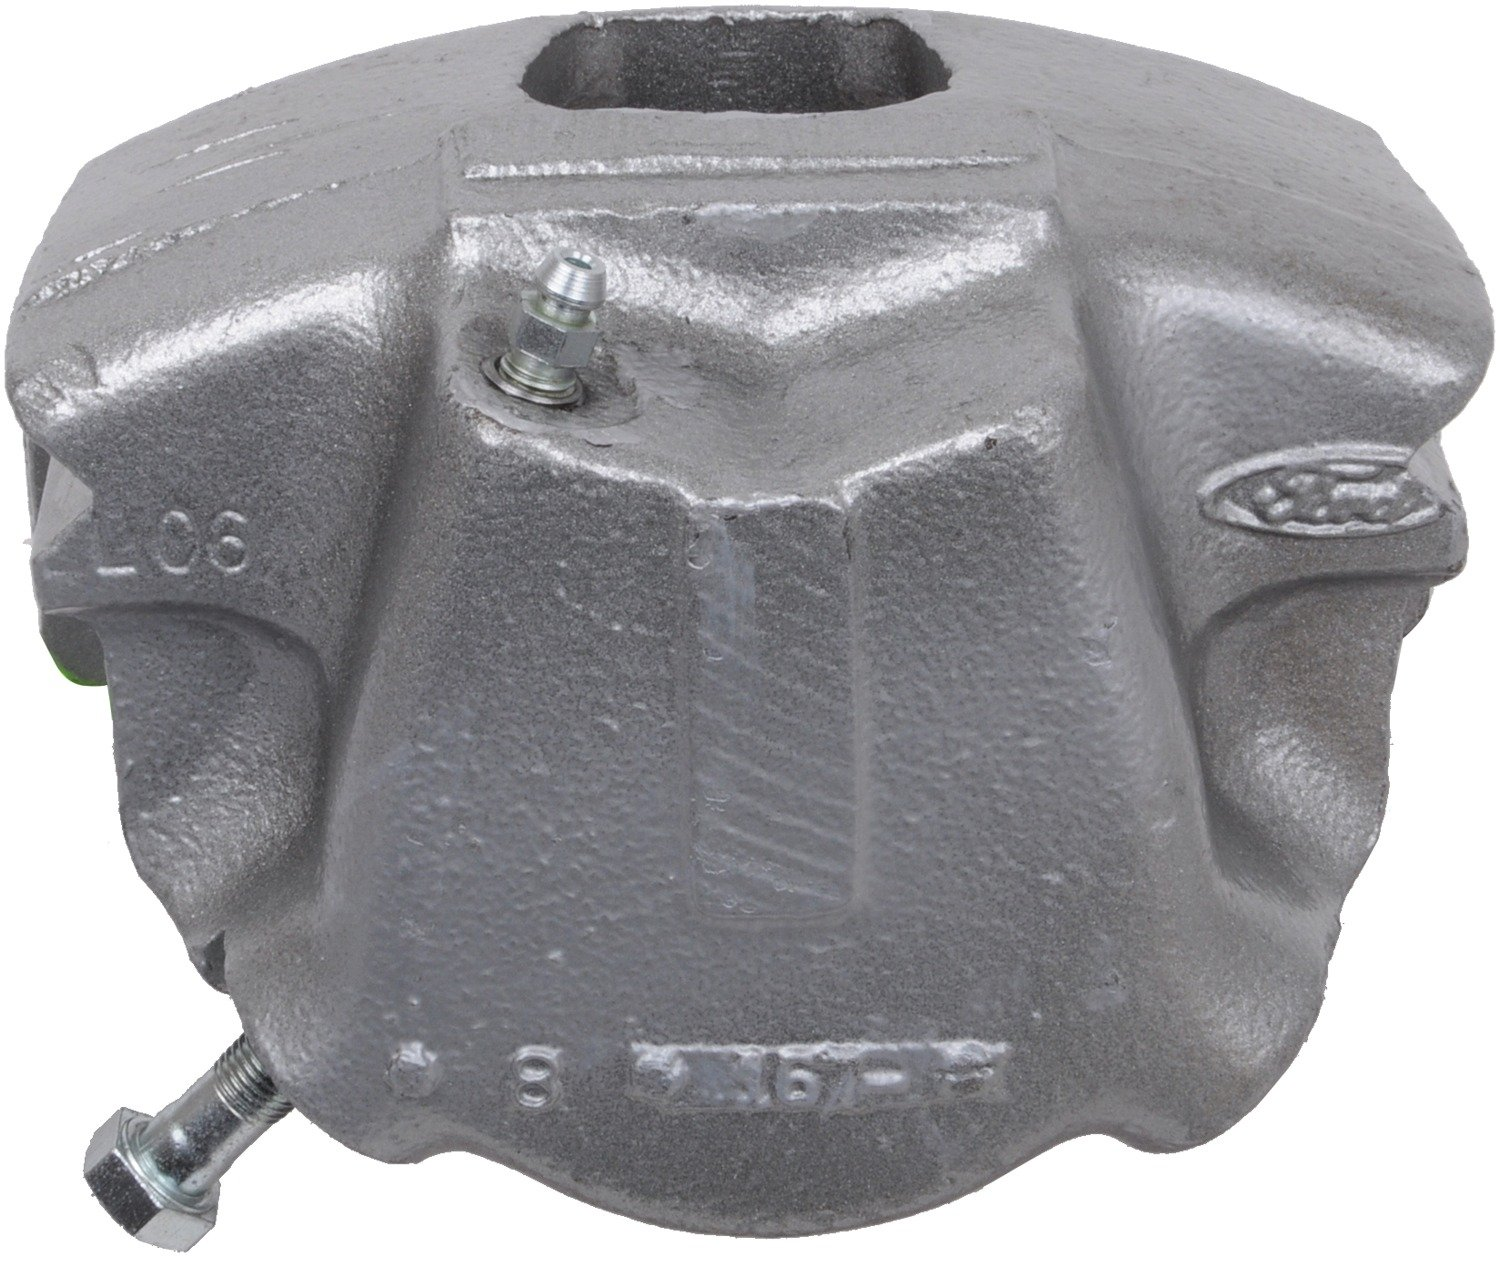 A1 Cardone 18-P4033 Ultra Premium Caliper (Remanufactured Ford Trks 83-73 F/R)